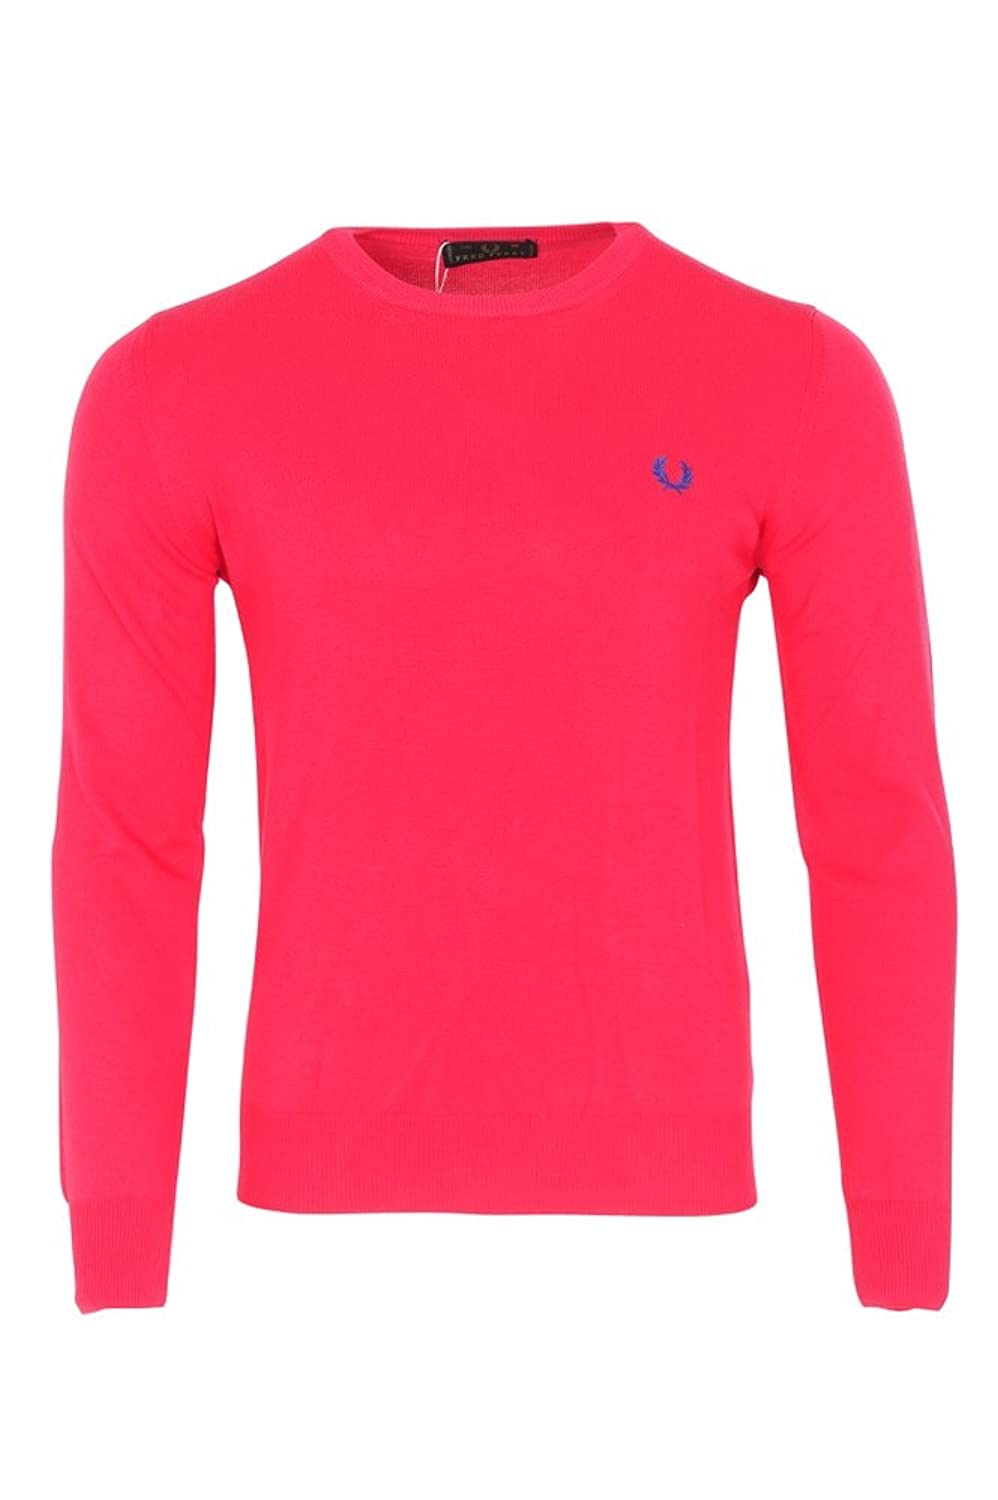 delicate Fred Perry Suéter Hombre Rosado algodón casual L - abckhabar.in e4cf9d635ed0e